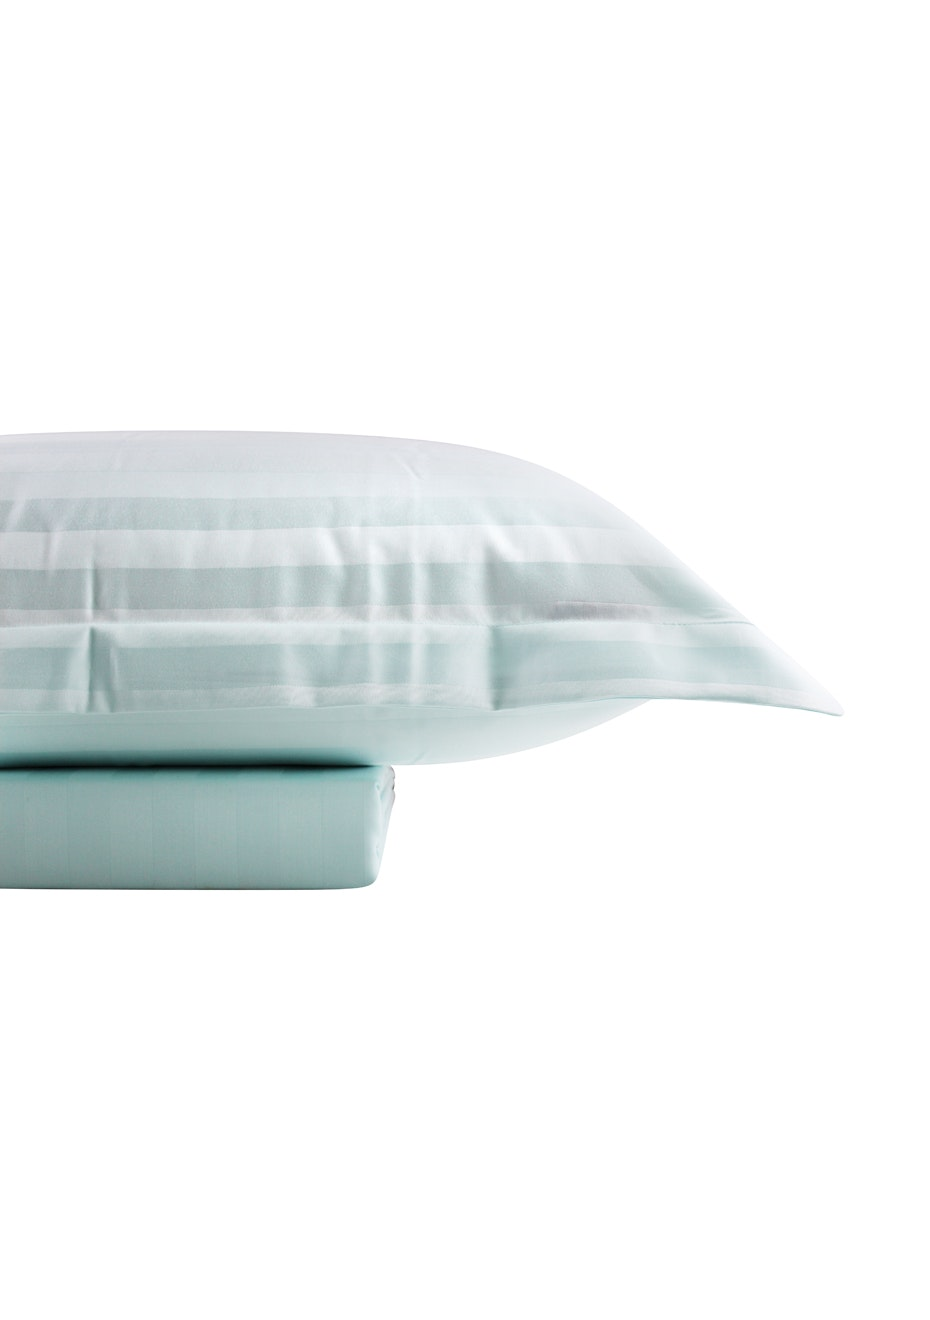 1000 Thread Count - Cotton Rich Quilt Cover Set Sateen Stripe - Mint - King Bed